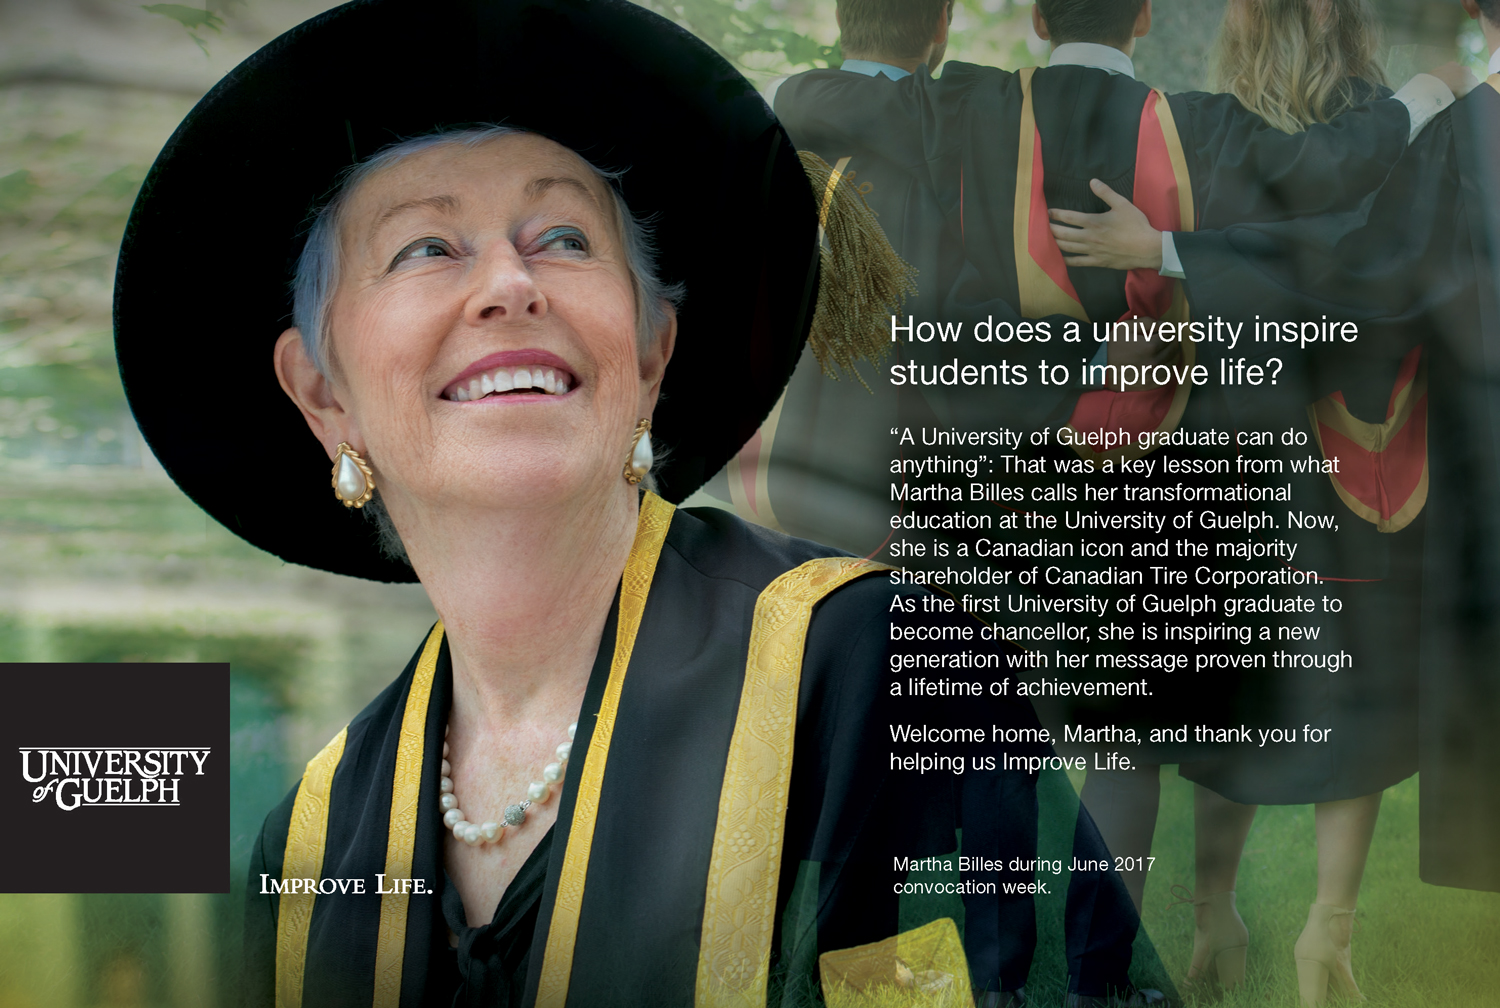 Ad layout showing Chancellor looking up at students in convocation gowns